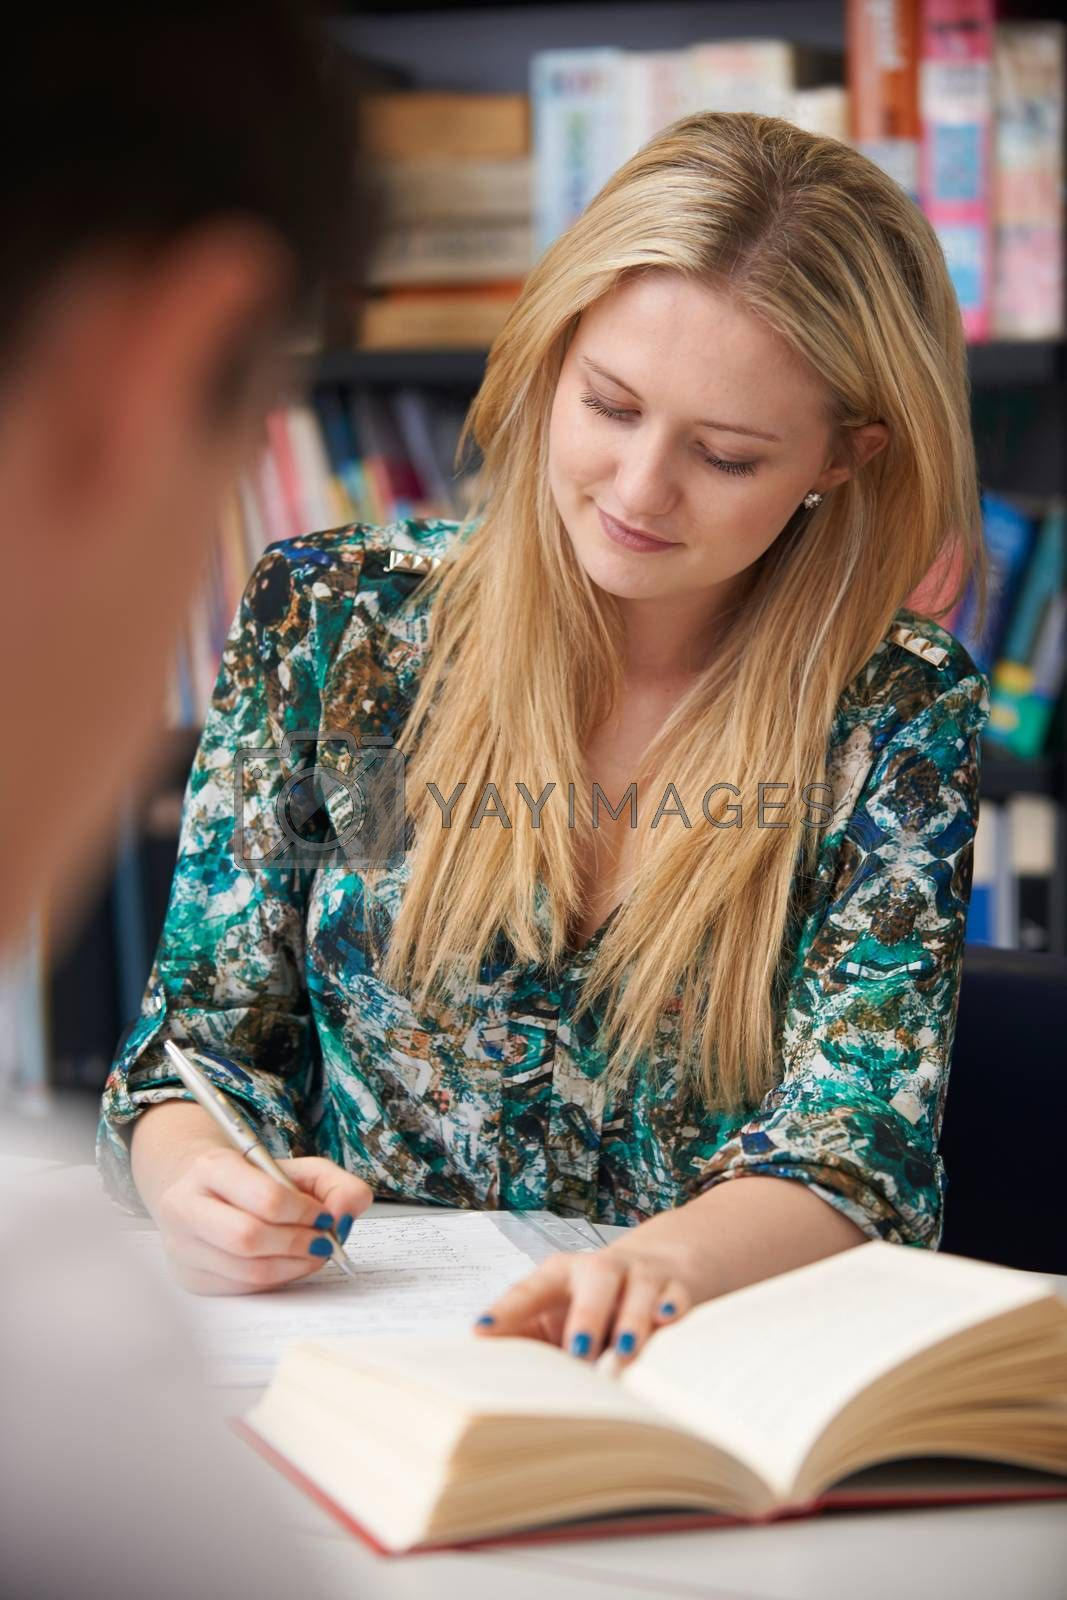 Female Student Working In Classroom